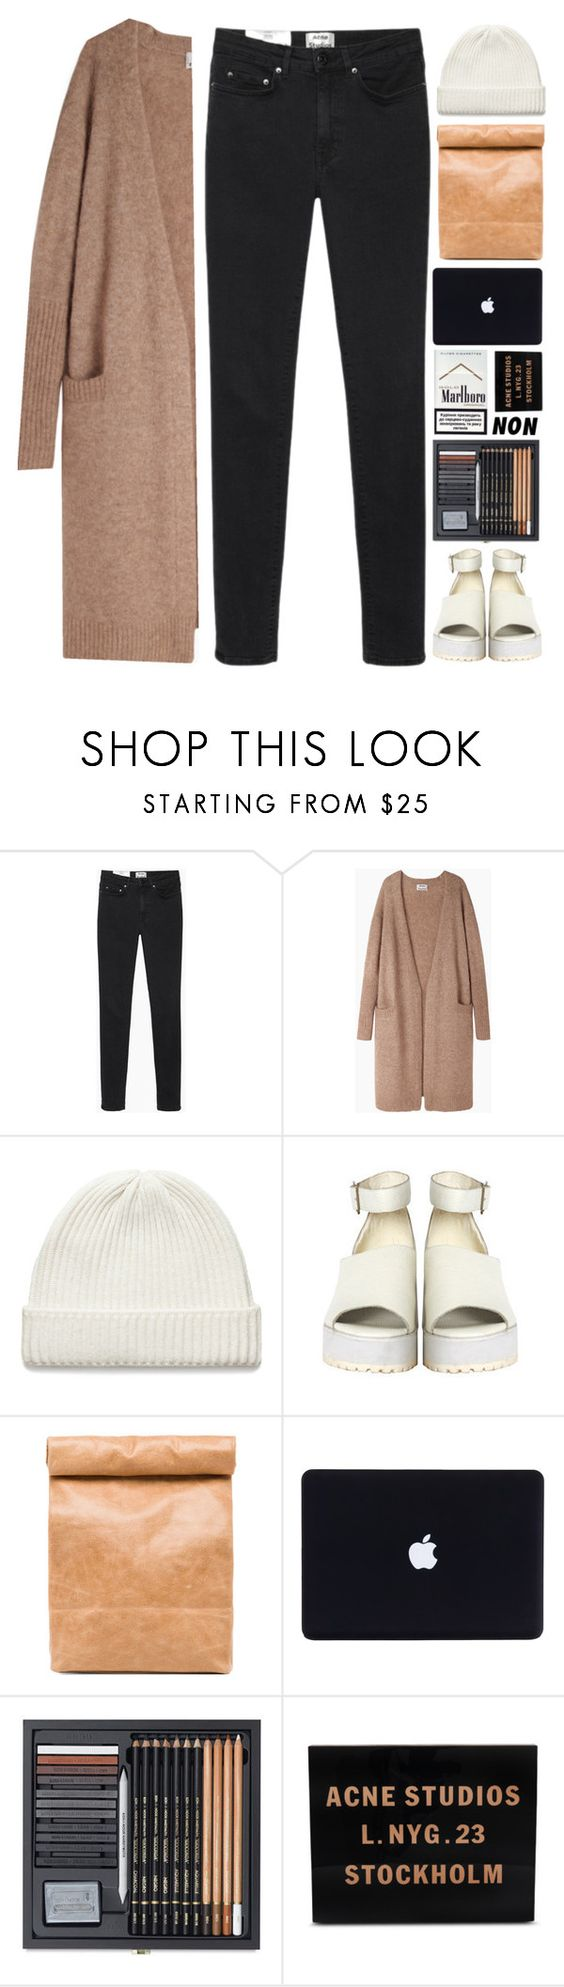 """calling // lewis watson"" by afton1217 ❤ liked on Polyvore featuring Acne Studios, The WhitePepper and Stampd"